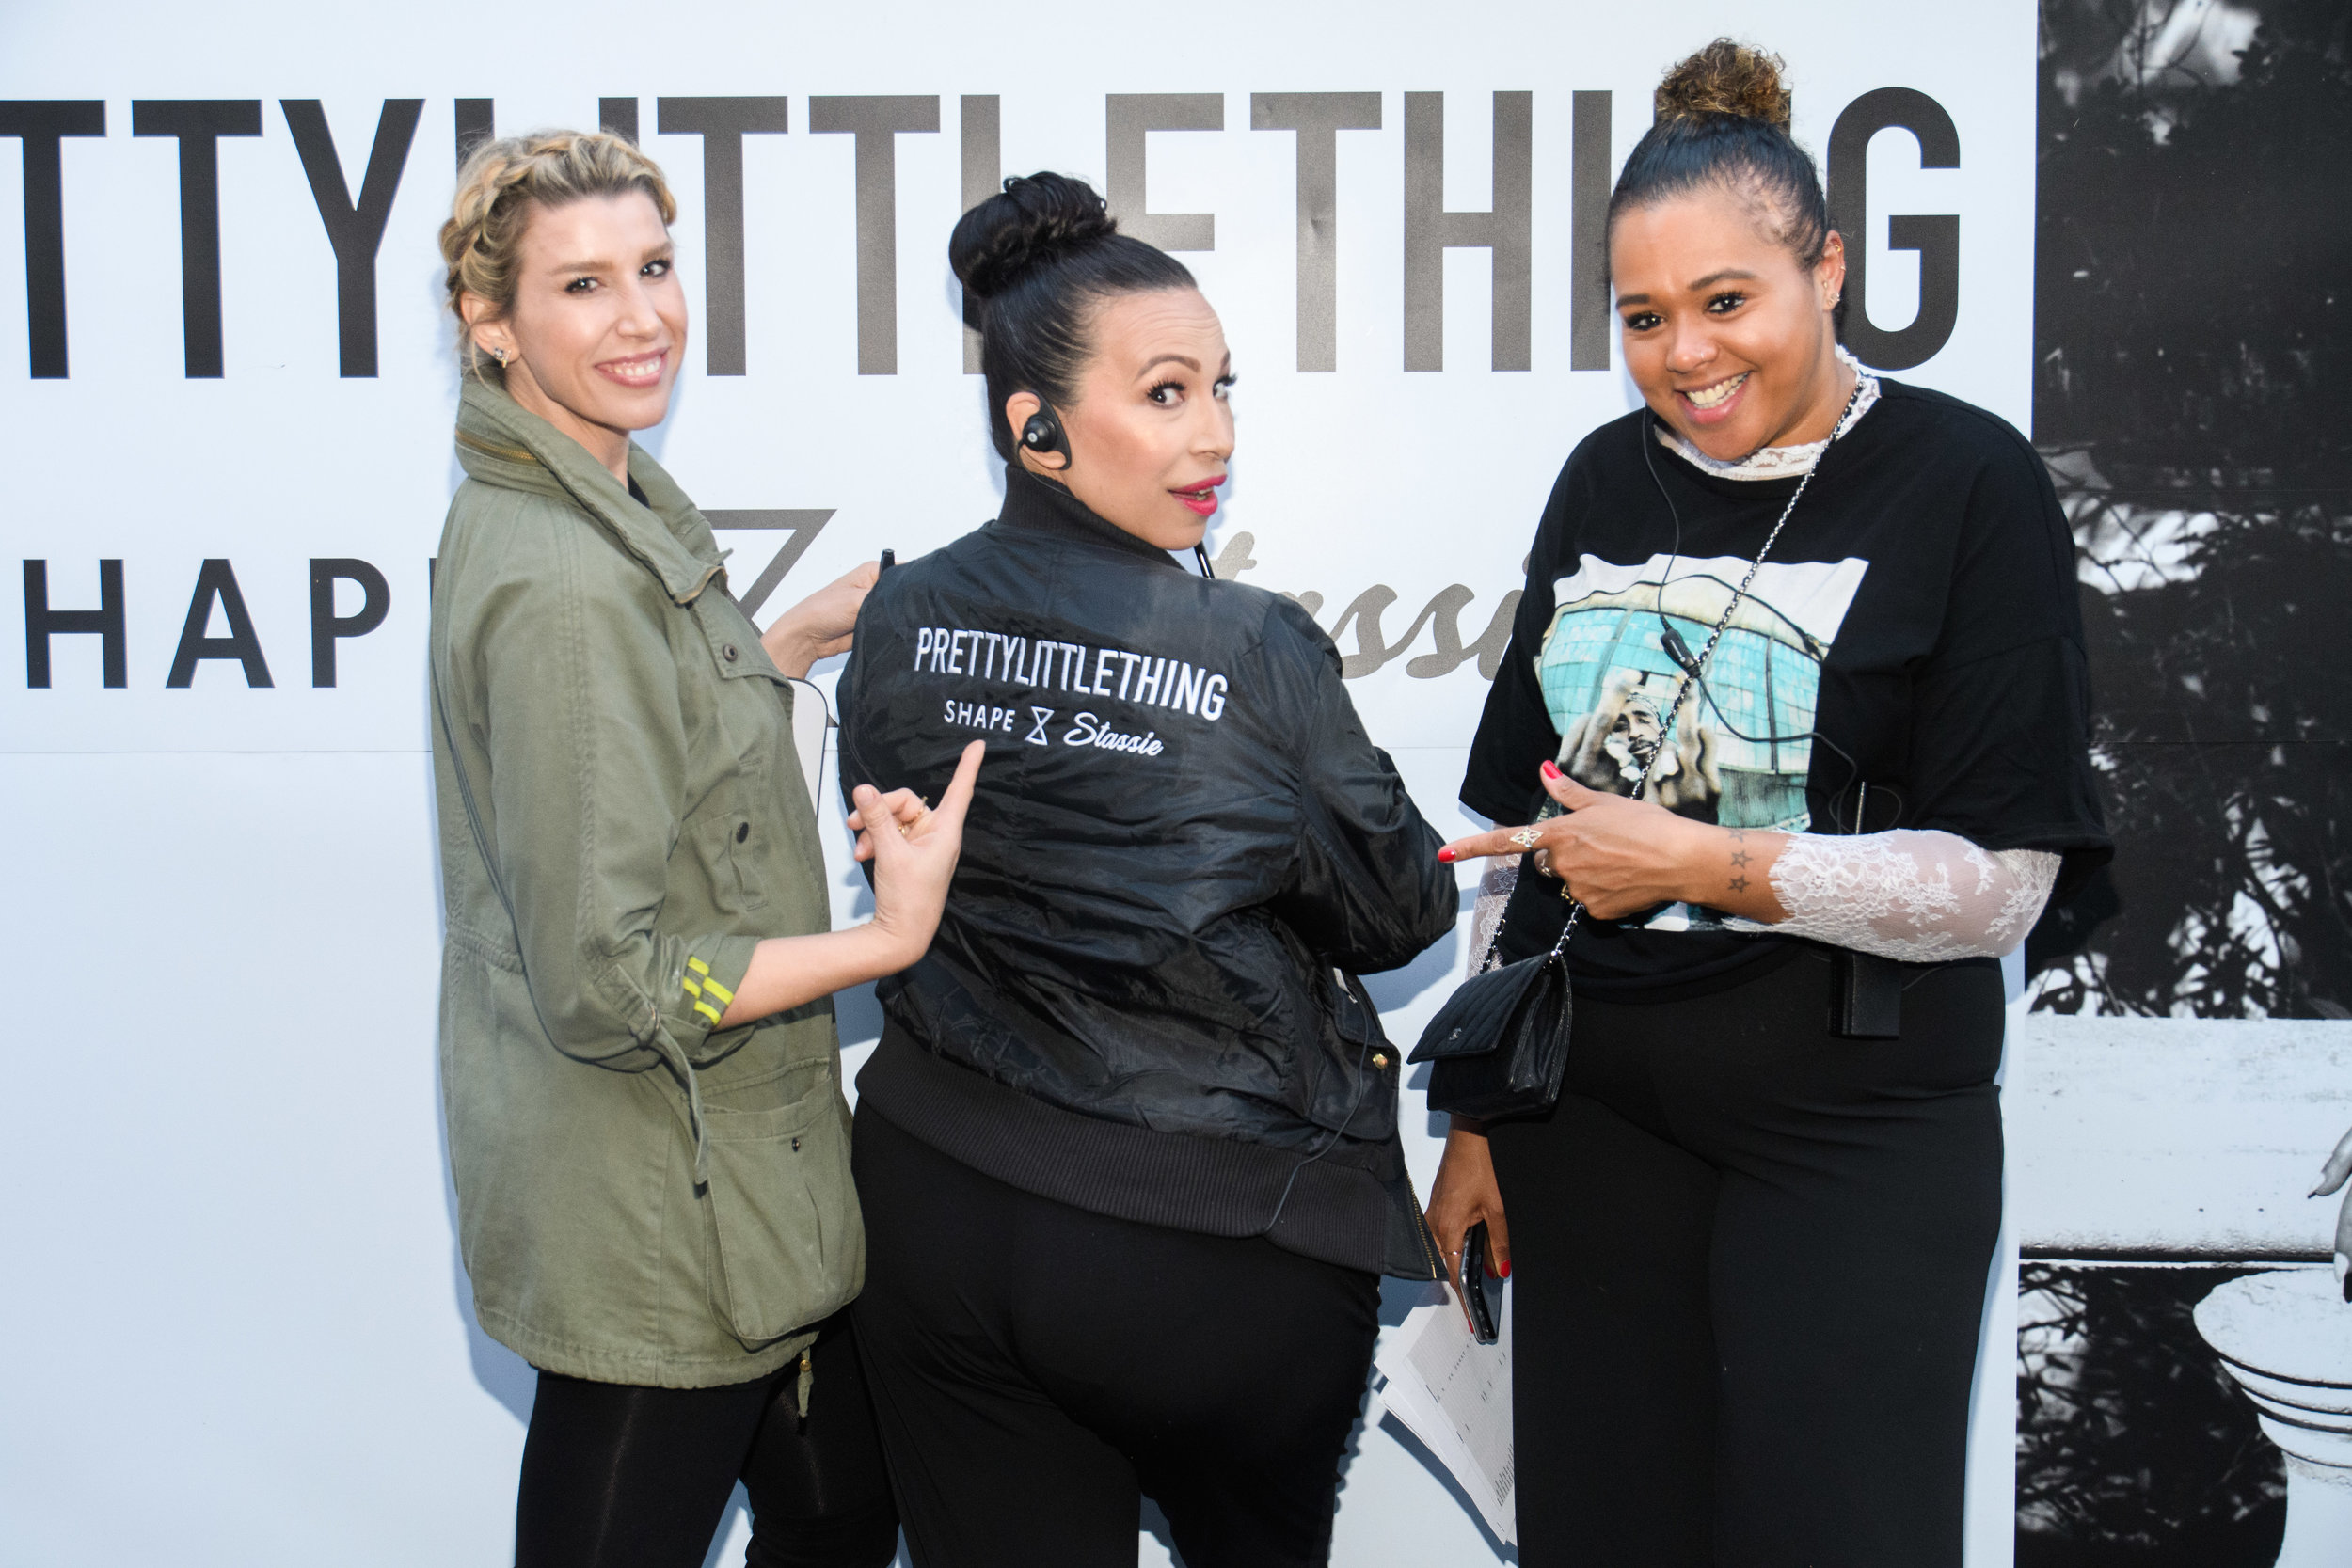 PrettyLittleThing New PLT Shape Collection with Stassie Celebrity Launch Party Lori from WOTP showing off PLT jacket.jpg